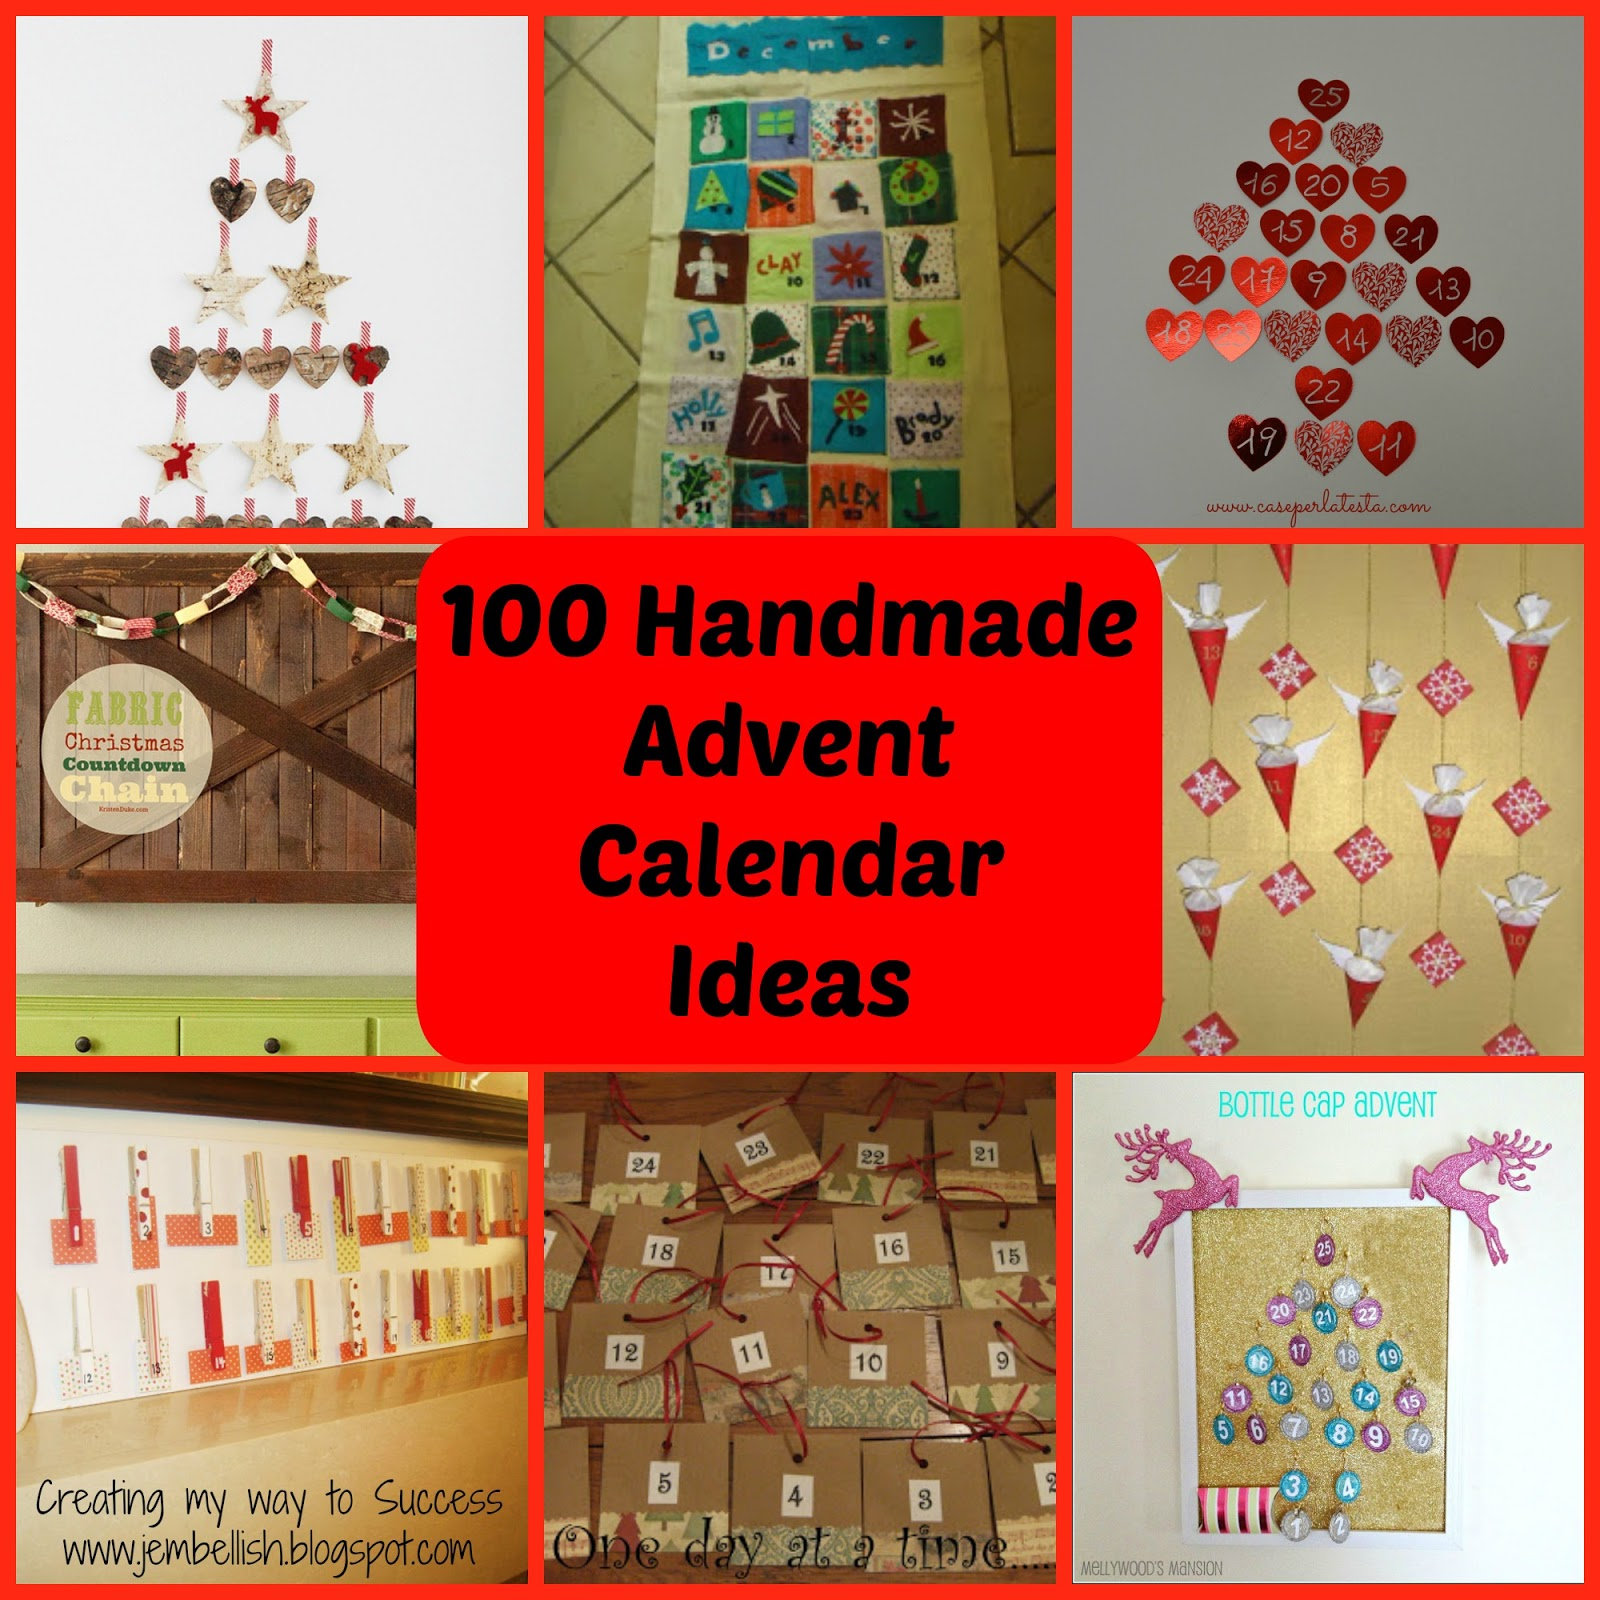 Sewn Advent Calendar Ideas : Creating my way to success ideas for handmade advent